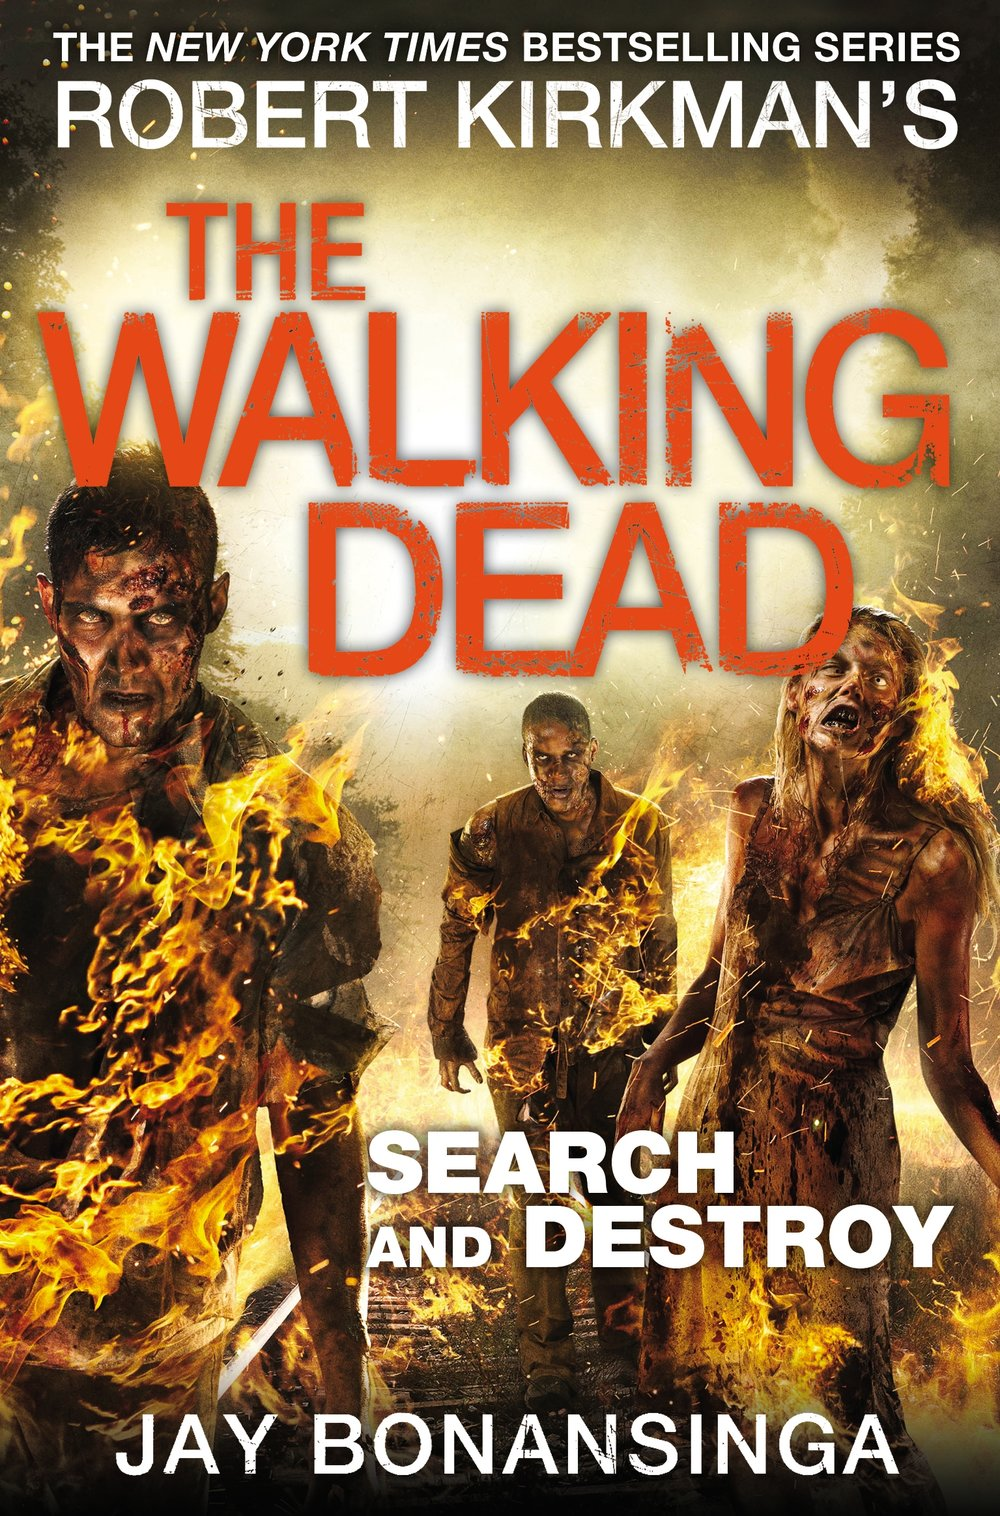 9781447275787The Walking Dead Search and Destroy.jpg